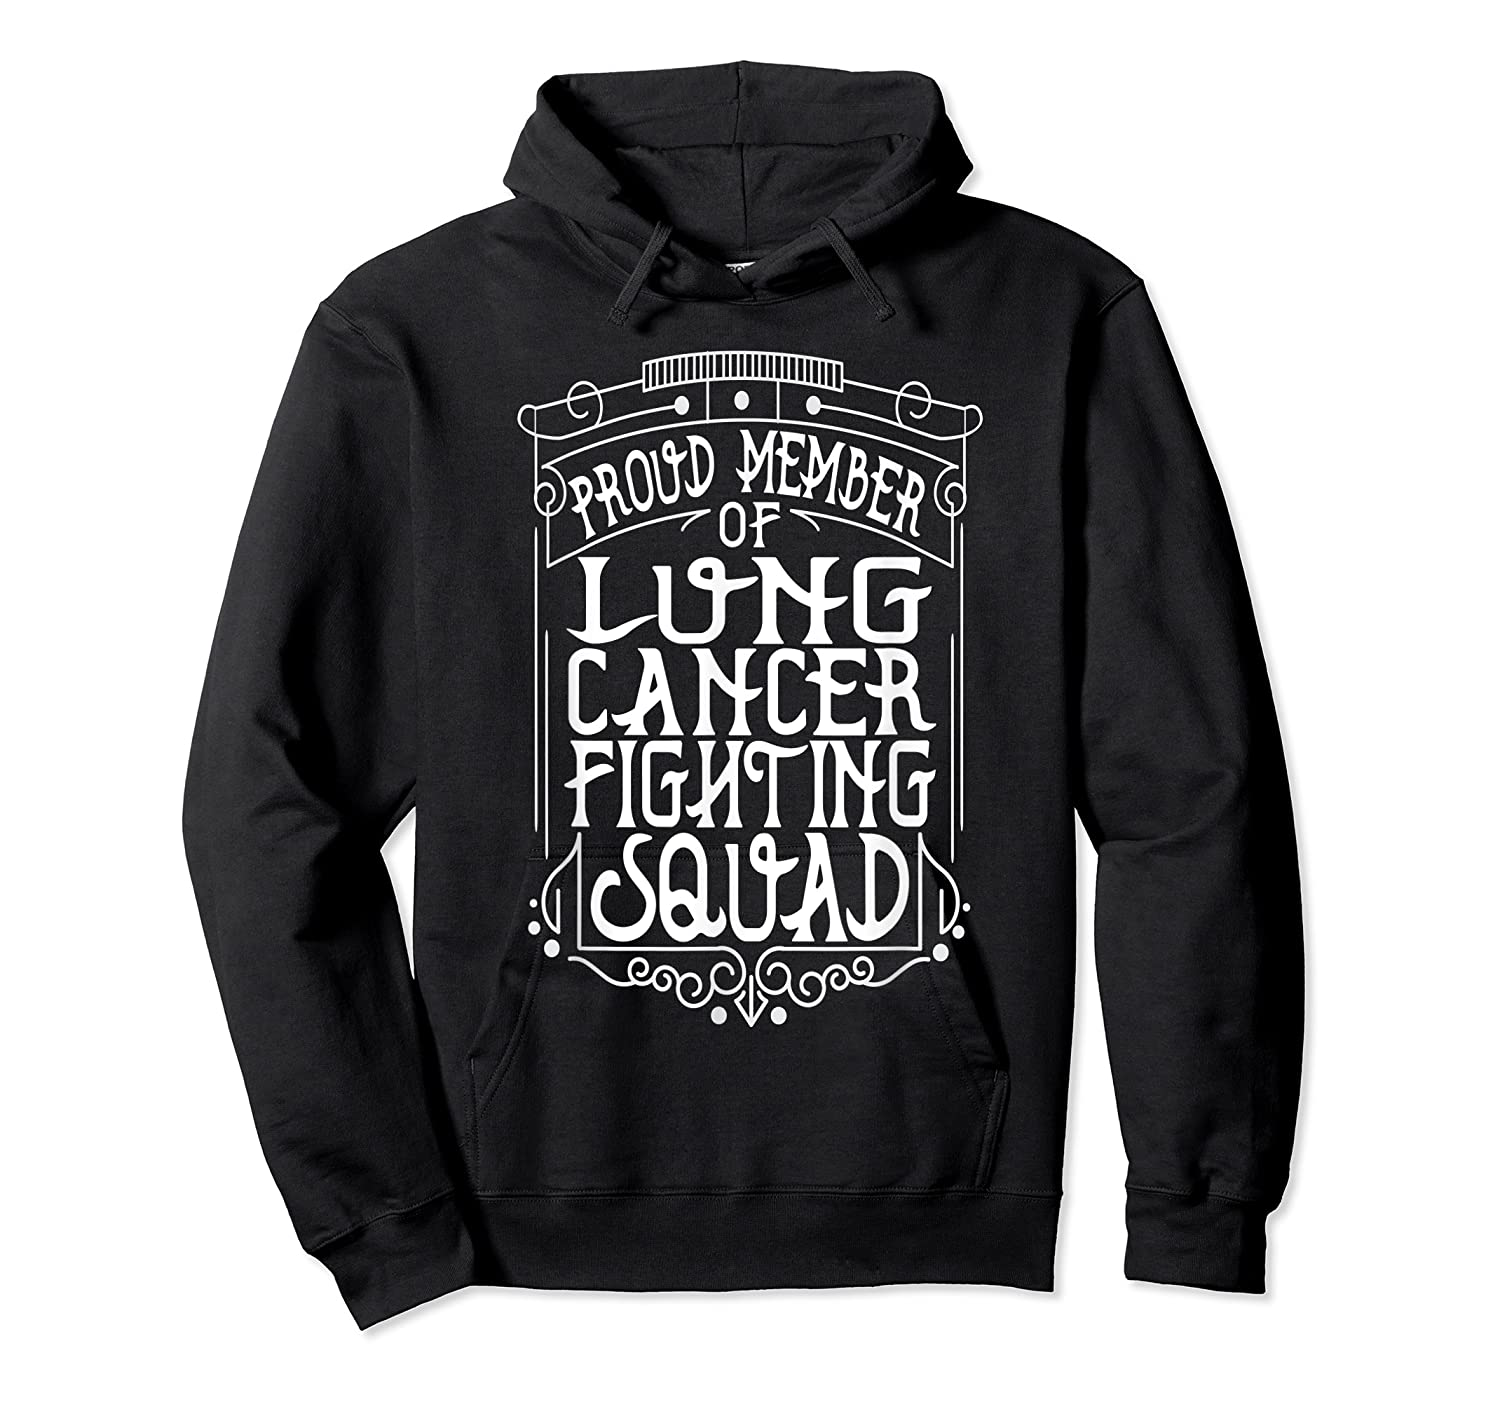 Fighting Squad Lung Cancer Awareness T-shirt Unisex Pullover Hoodie